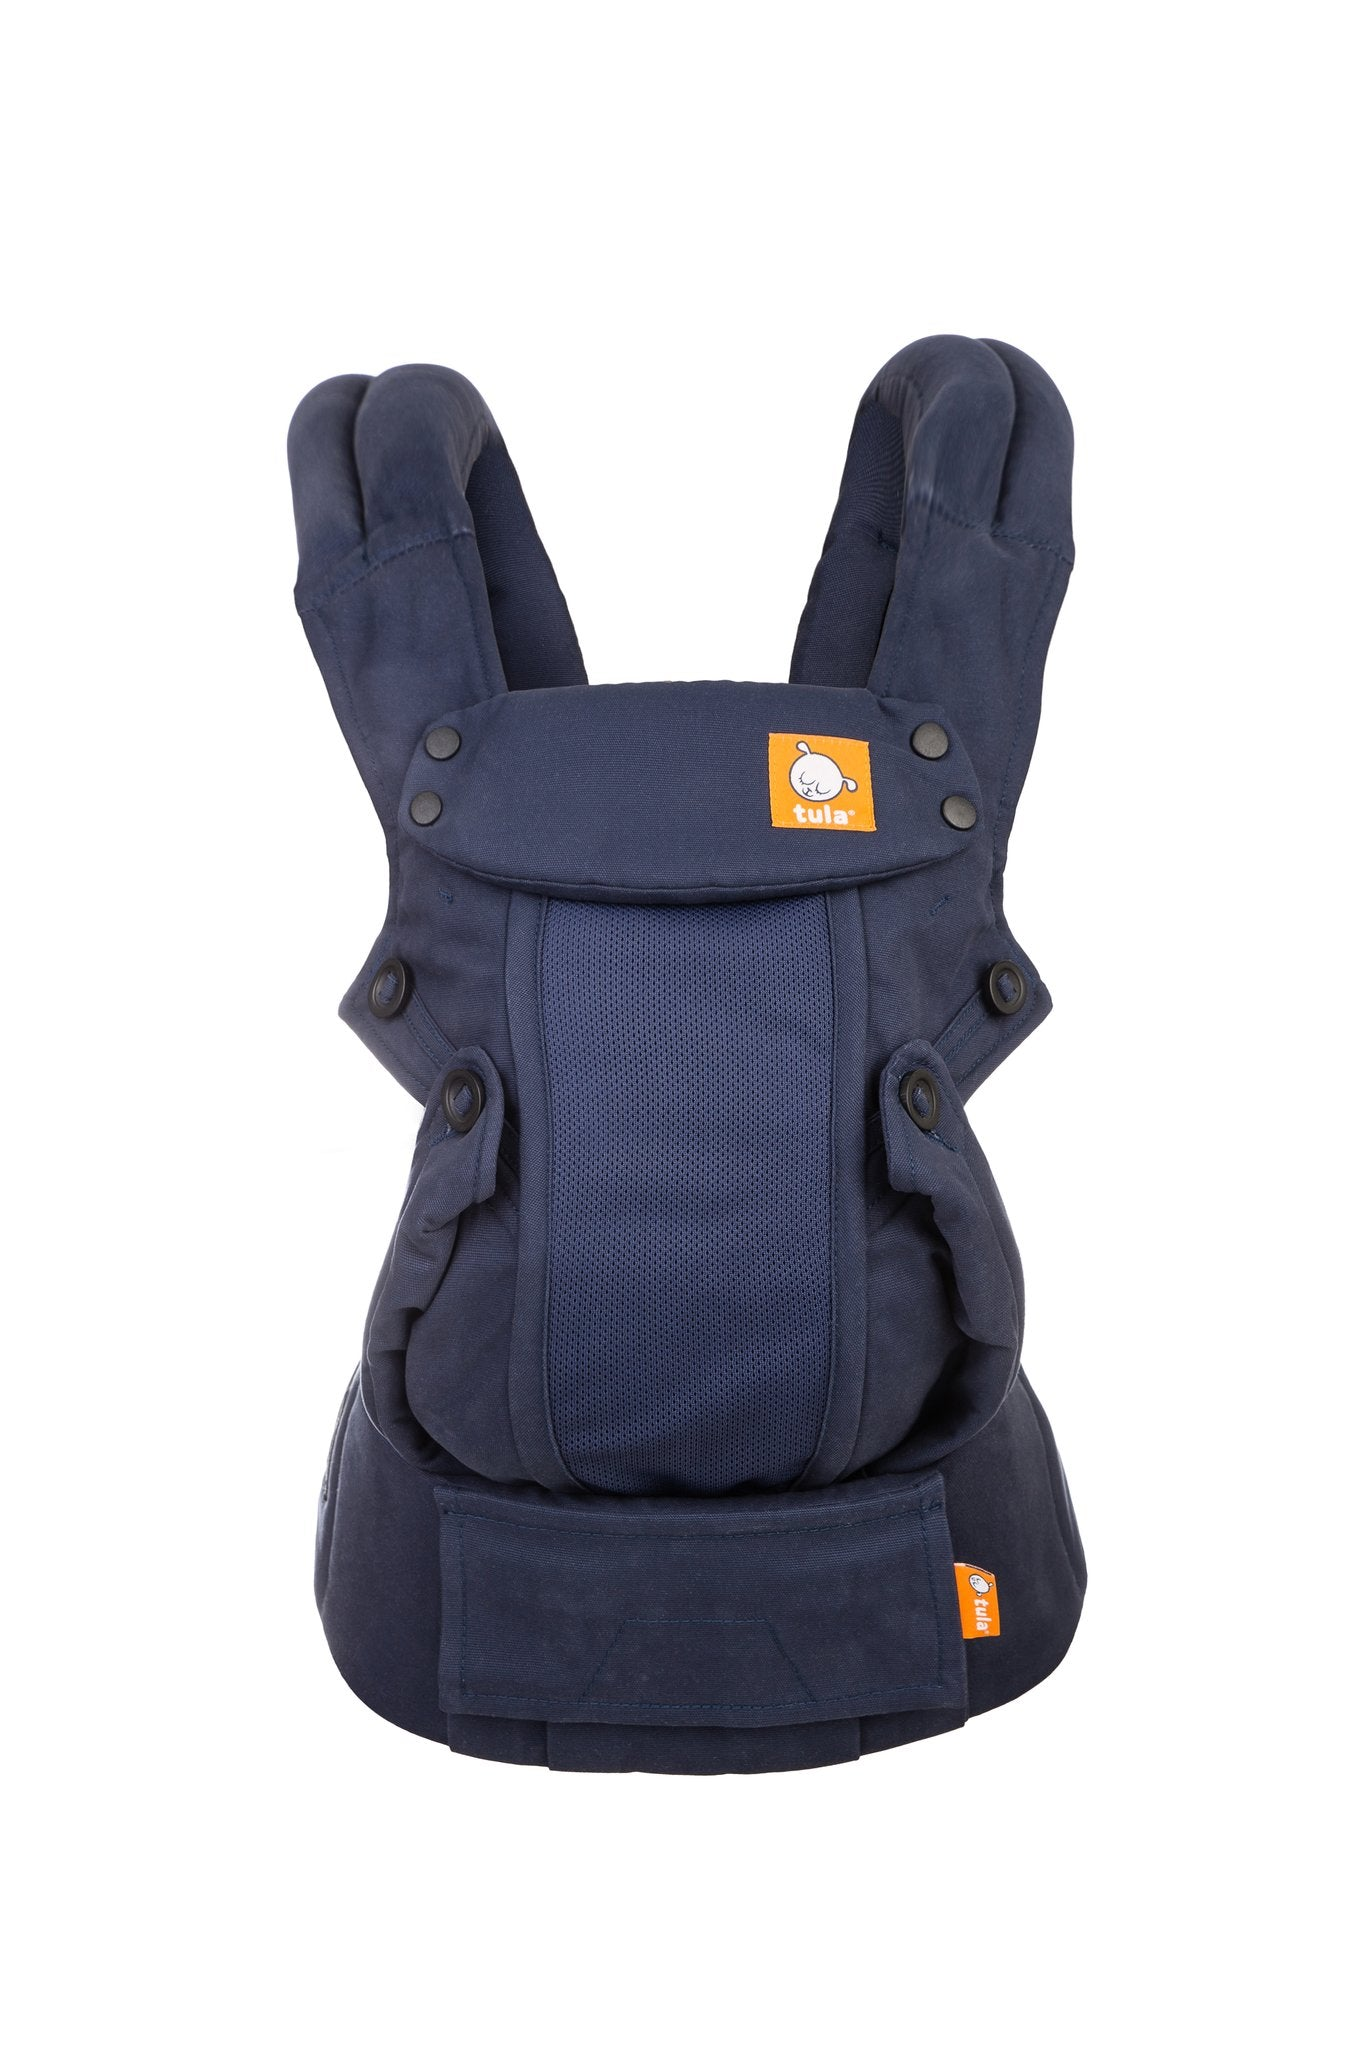 Tula Baby Carrier Navy Blue